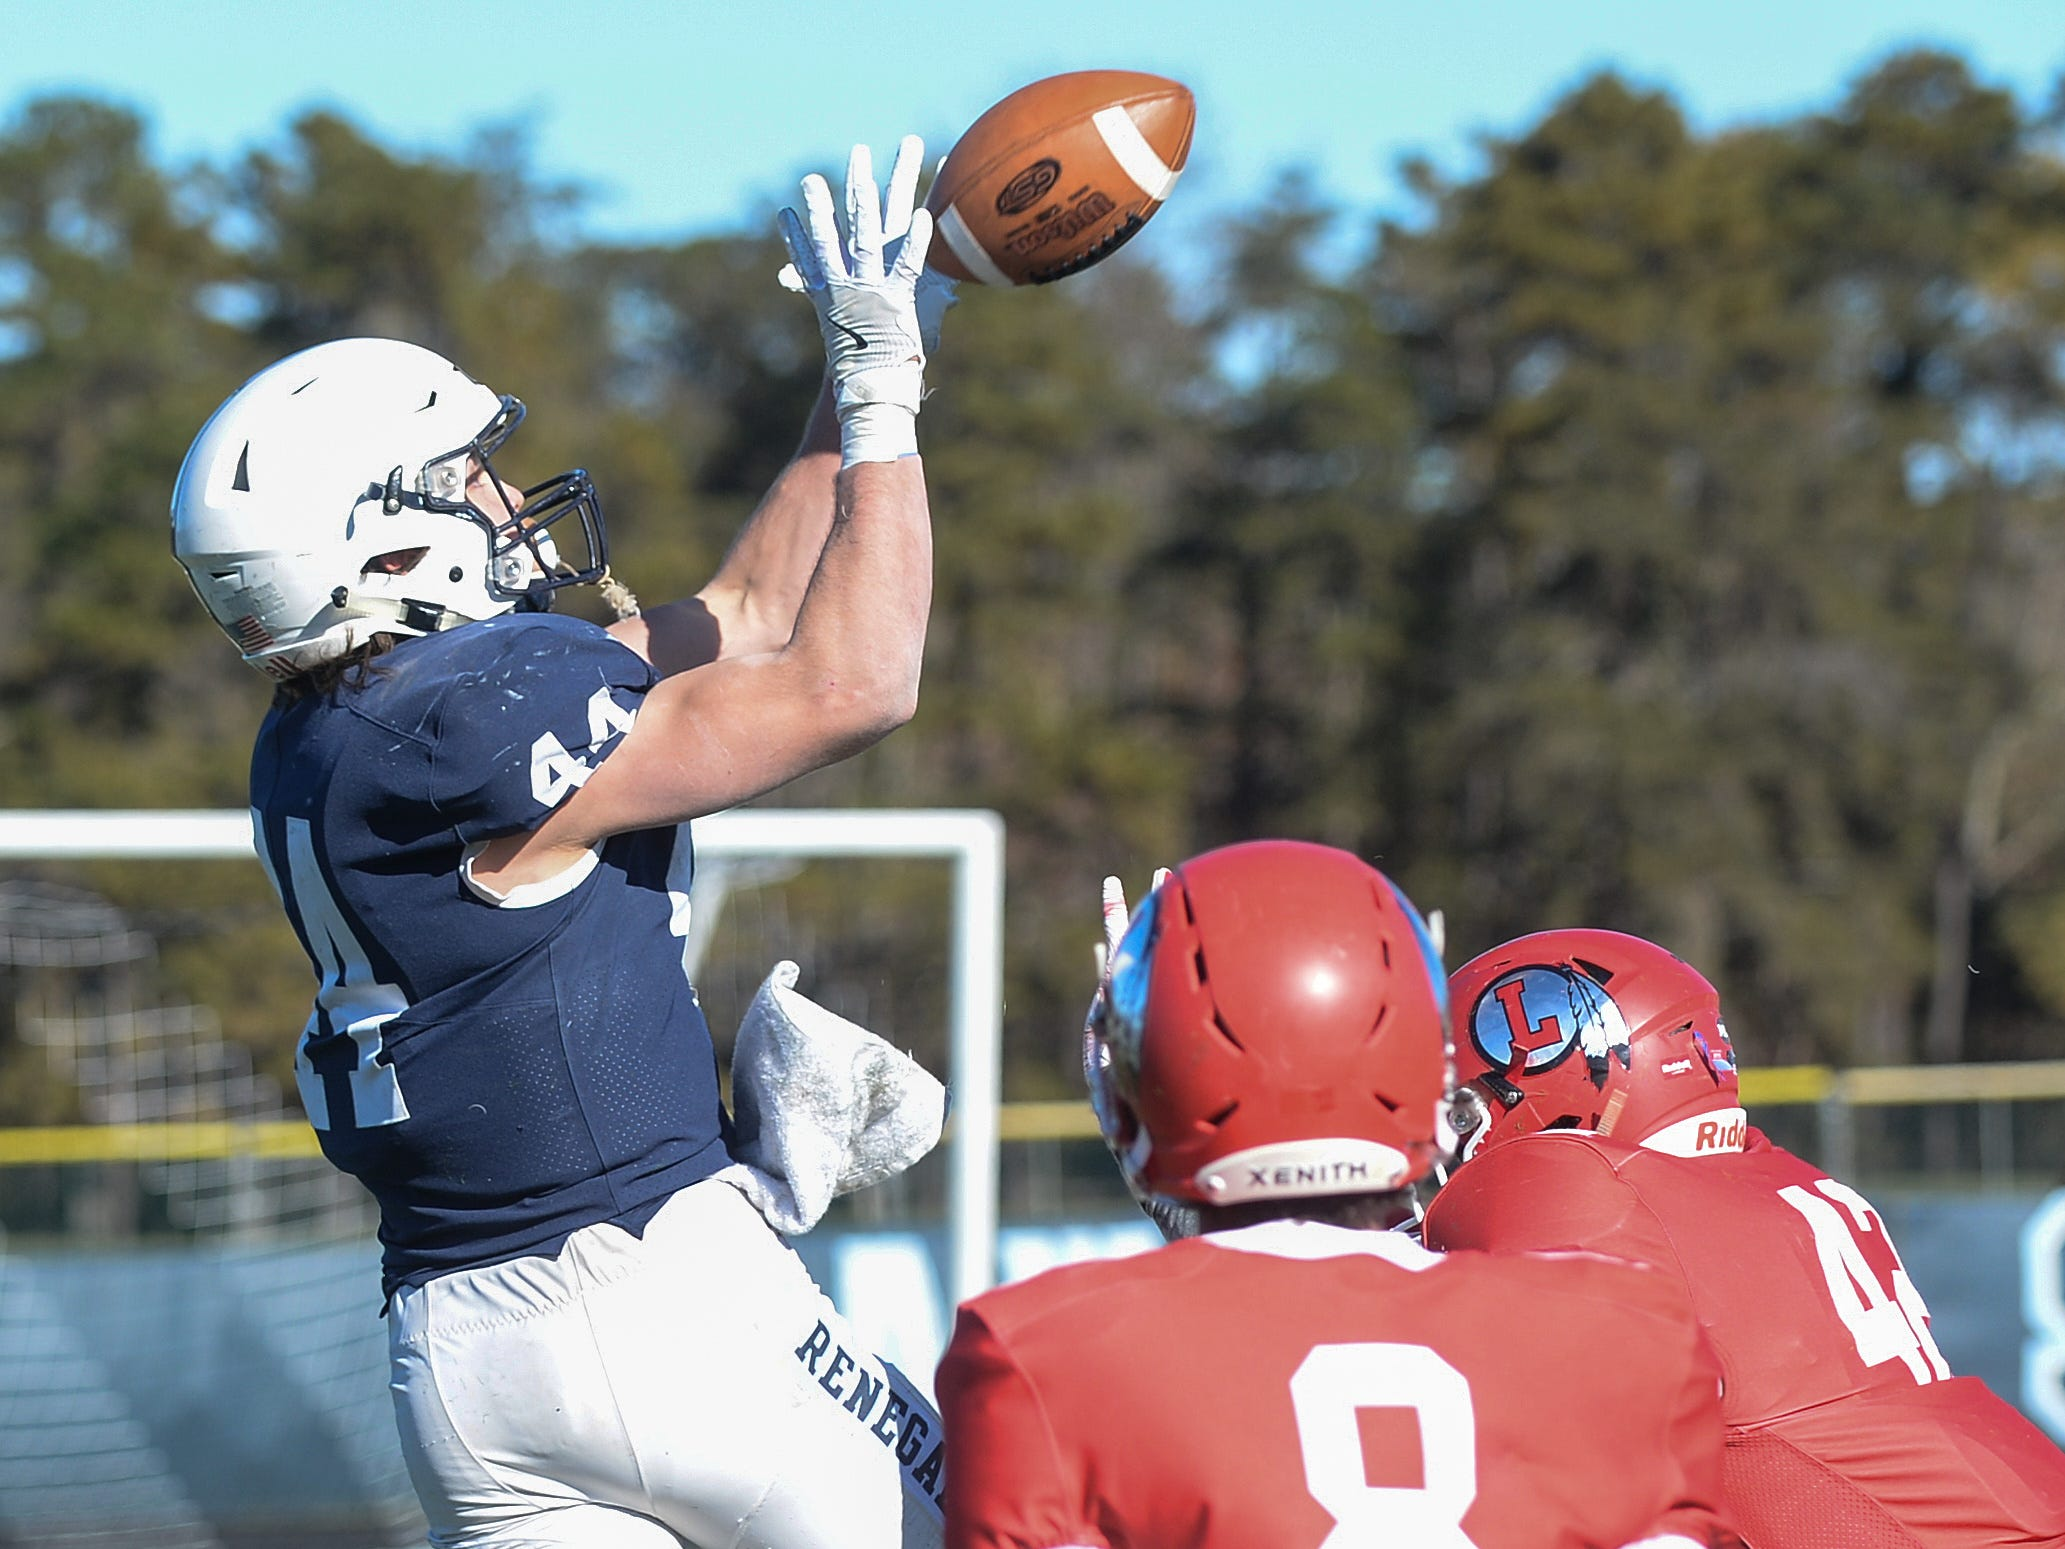 Shawnee's Joey Dalsey catches a touchdown pass during the Thanksgiving Day football game against Lenape at Shawnee High School, Thursday, Nov. 22, 2018.